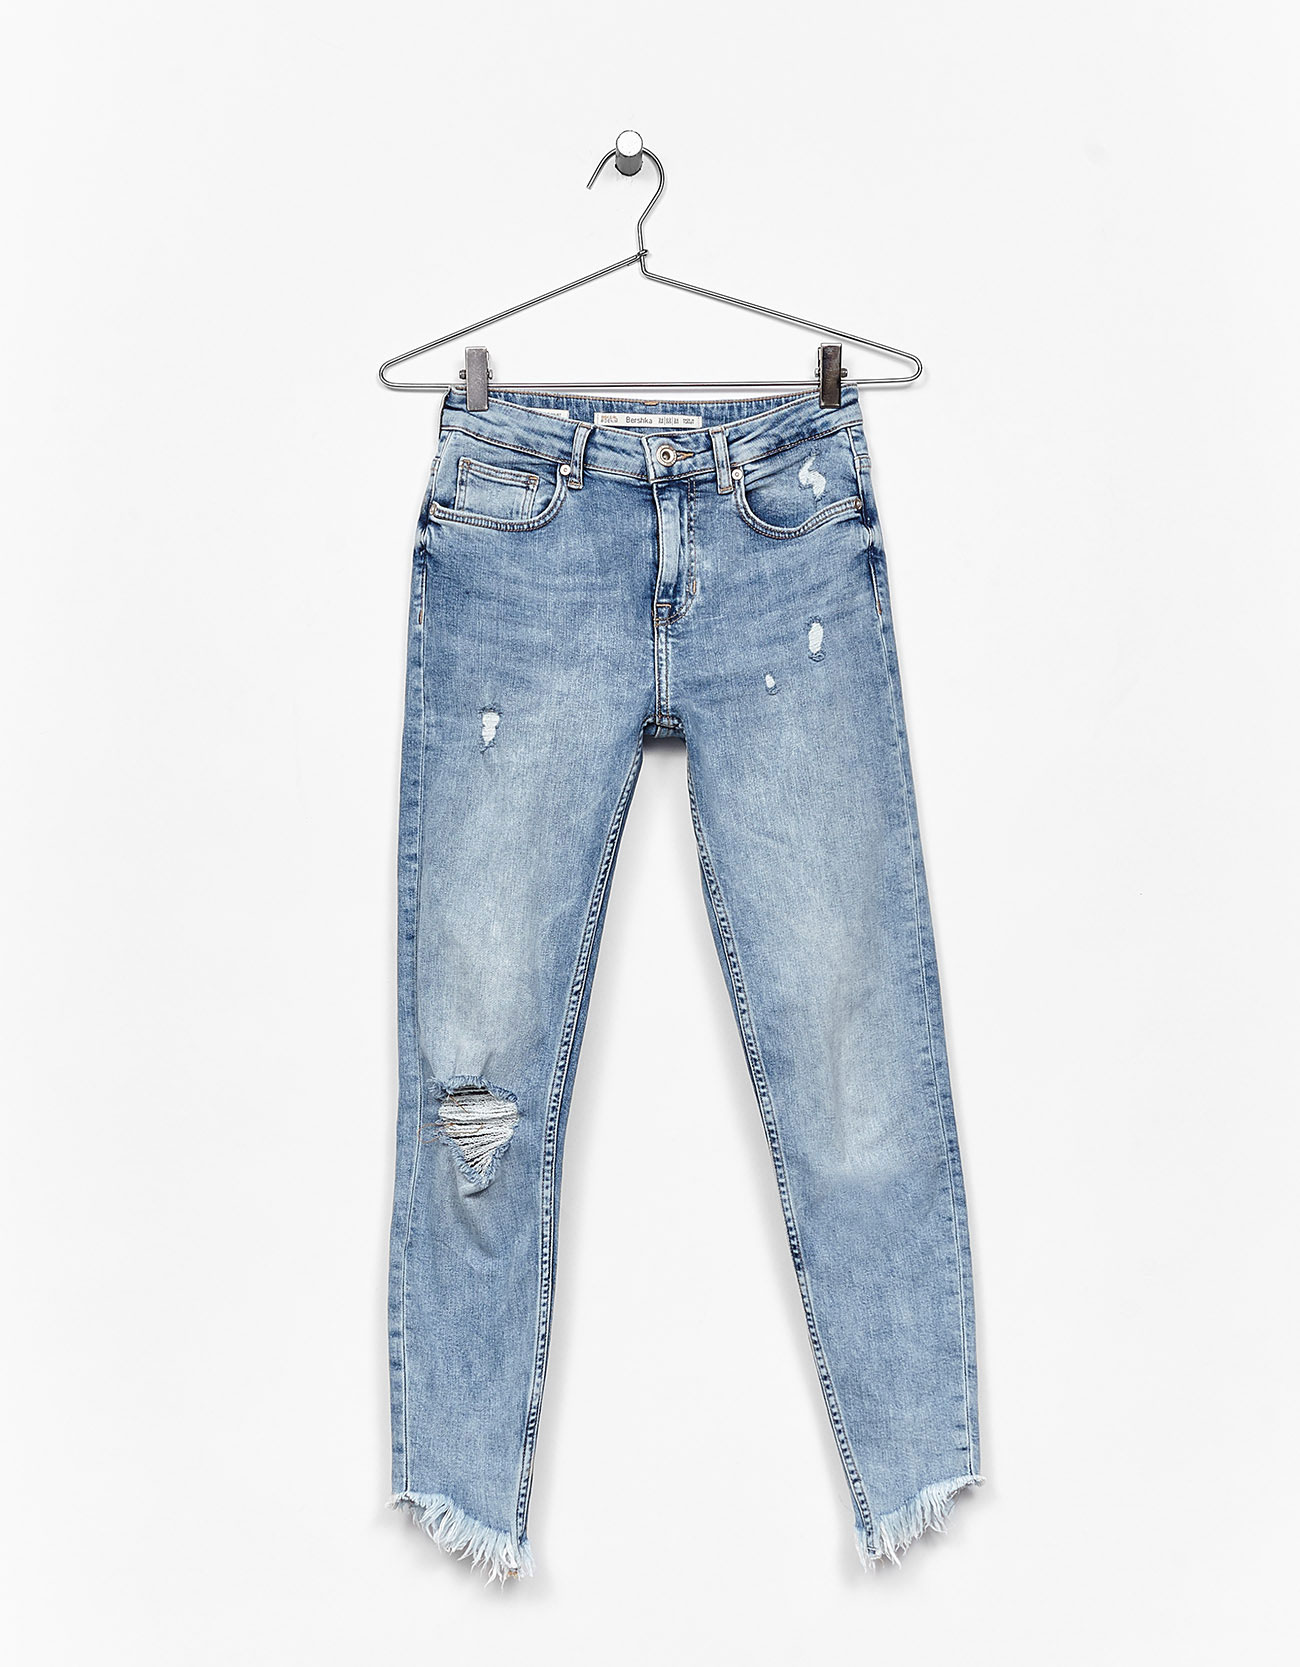 Ripped jeans with frayed hem - Jeans - Bershka Philippines